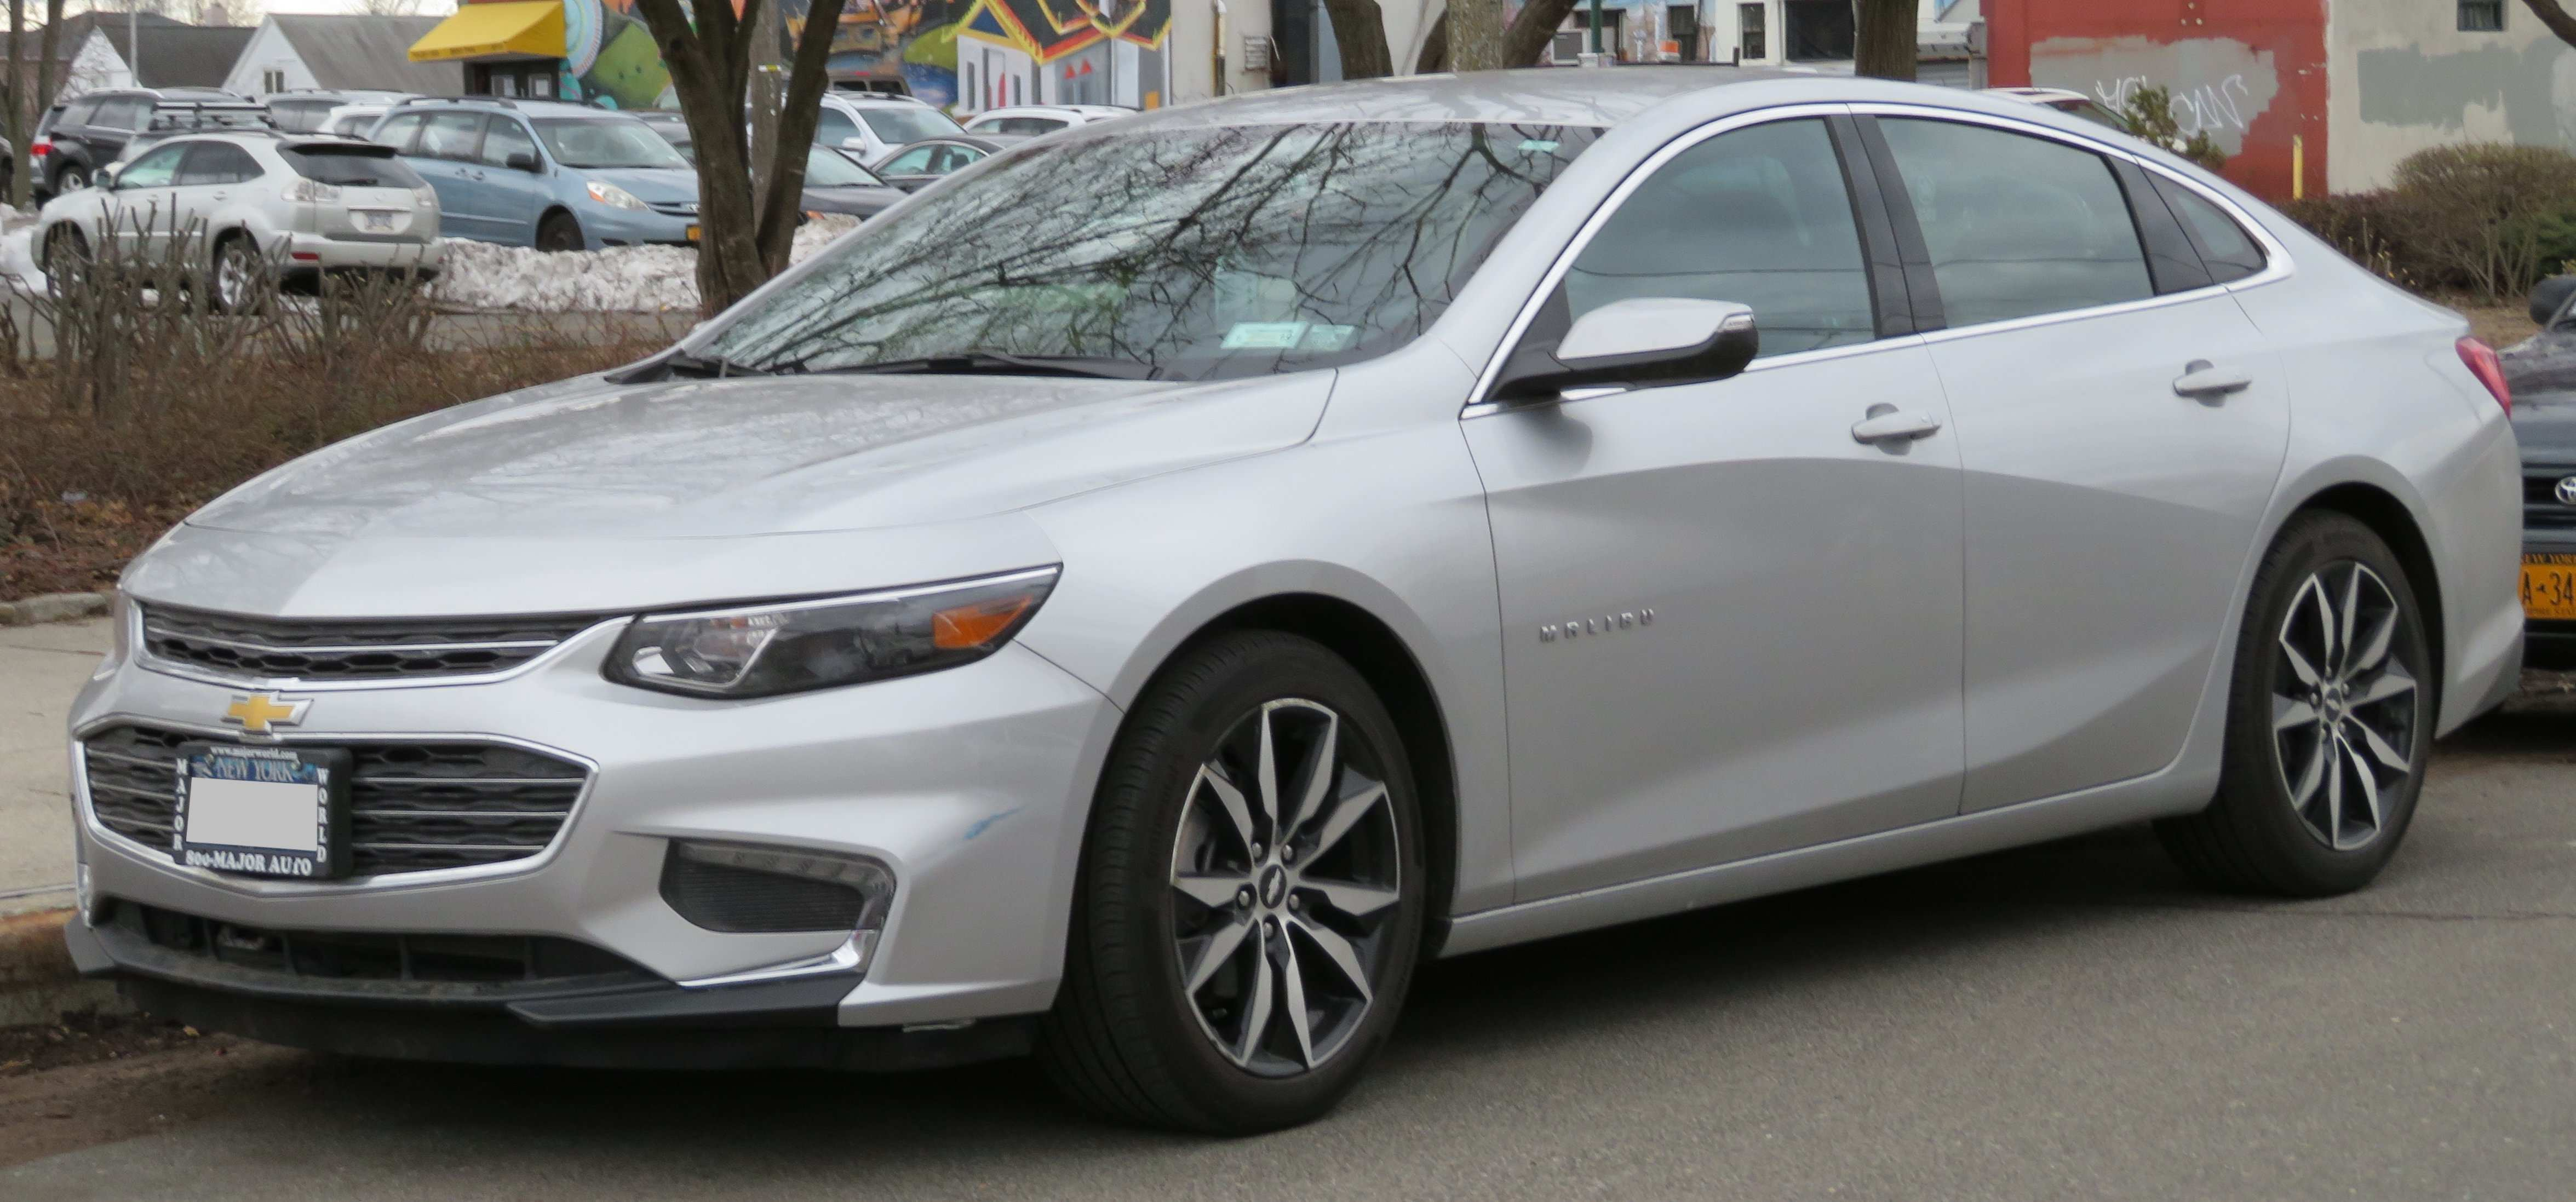 85 The Best 2020 Chevy Malibu Review